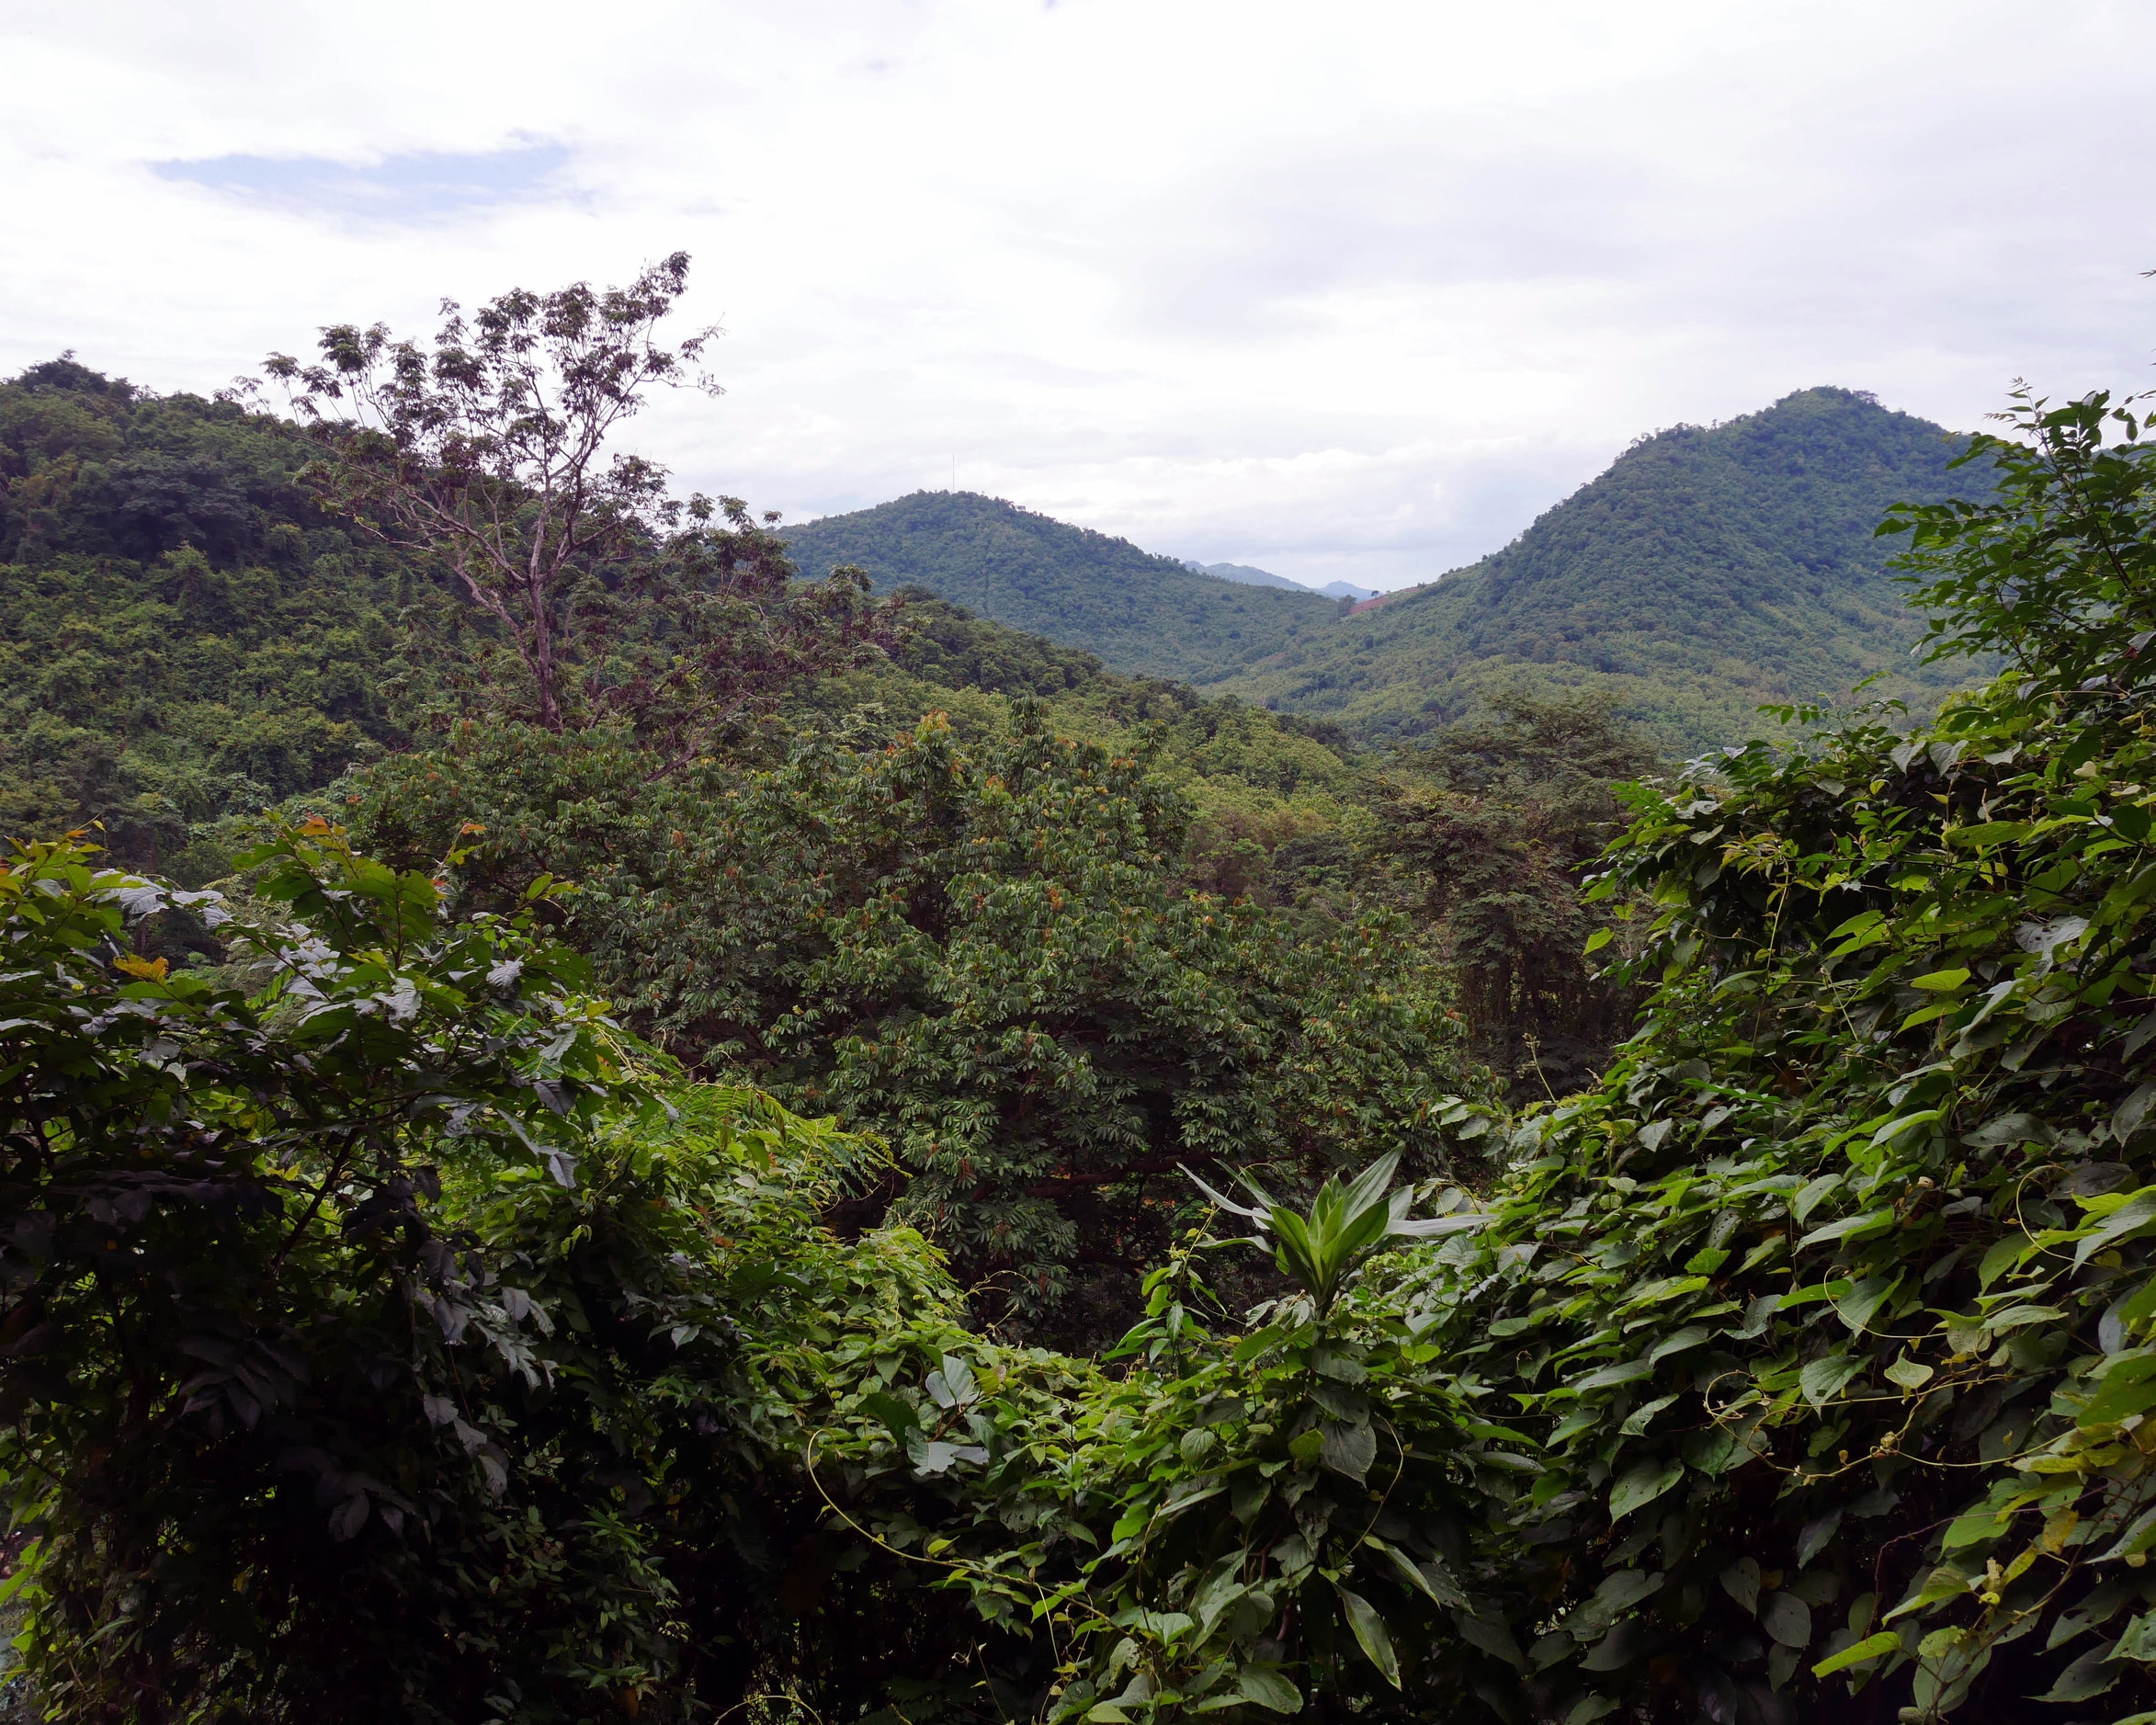 View from the top of Kuang Si Falls